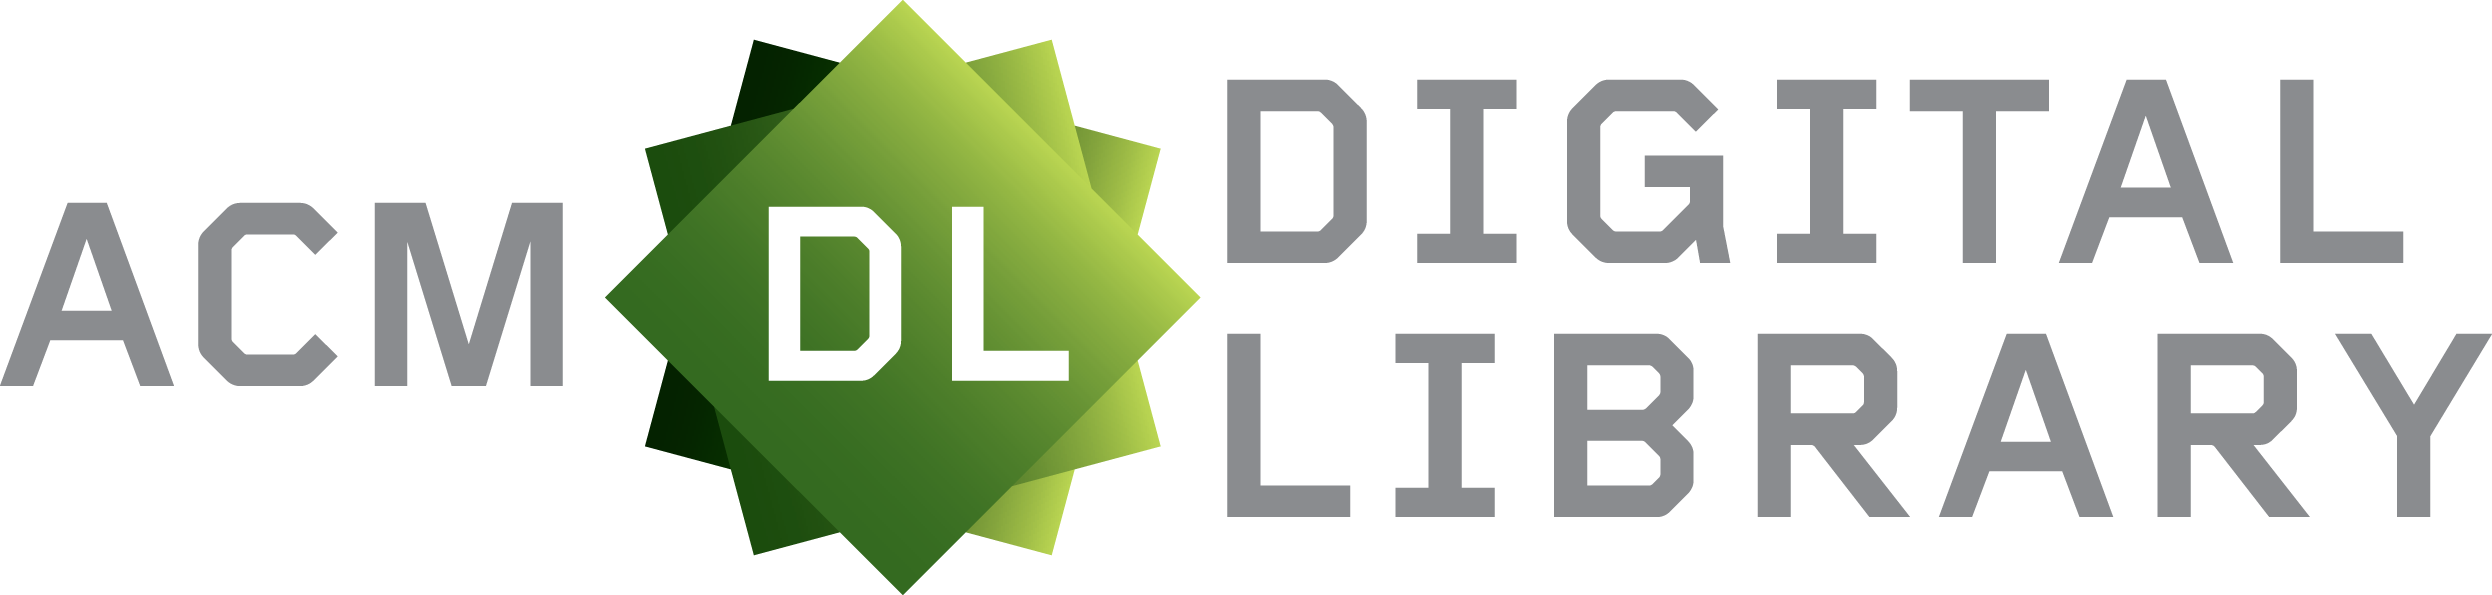 ACM Digital Library Logo